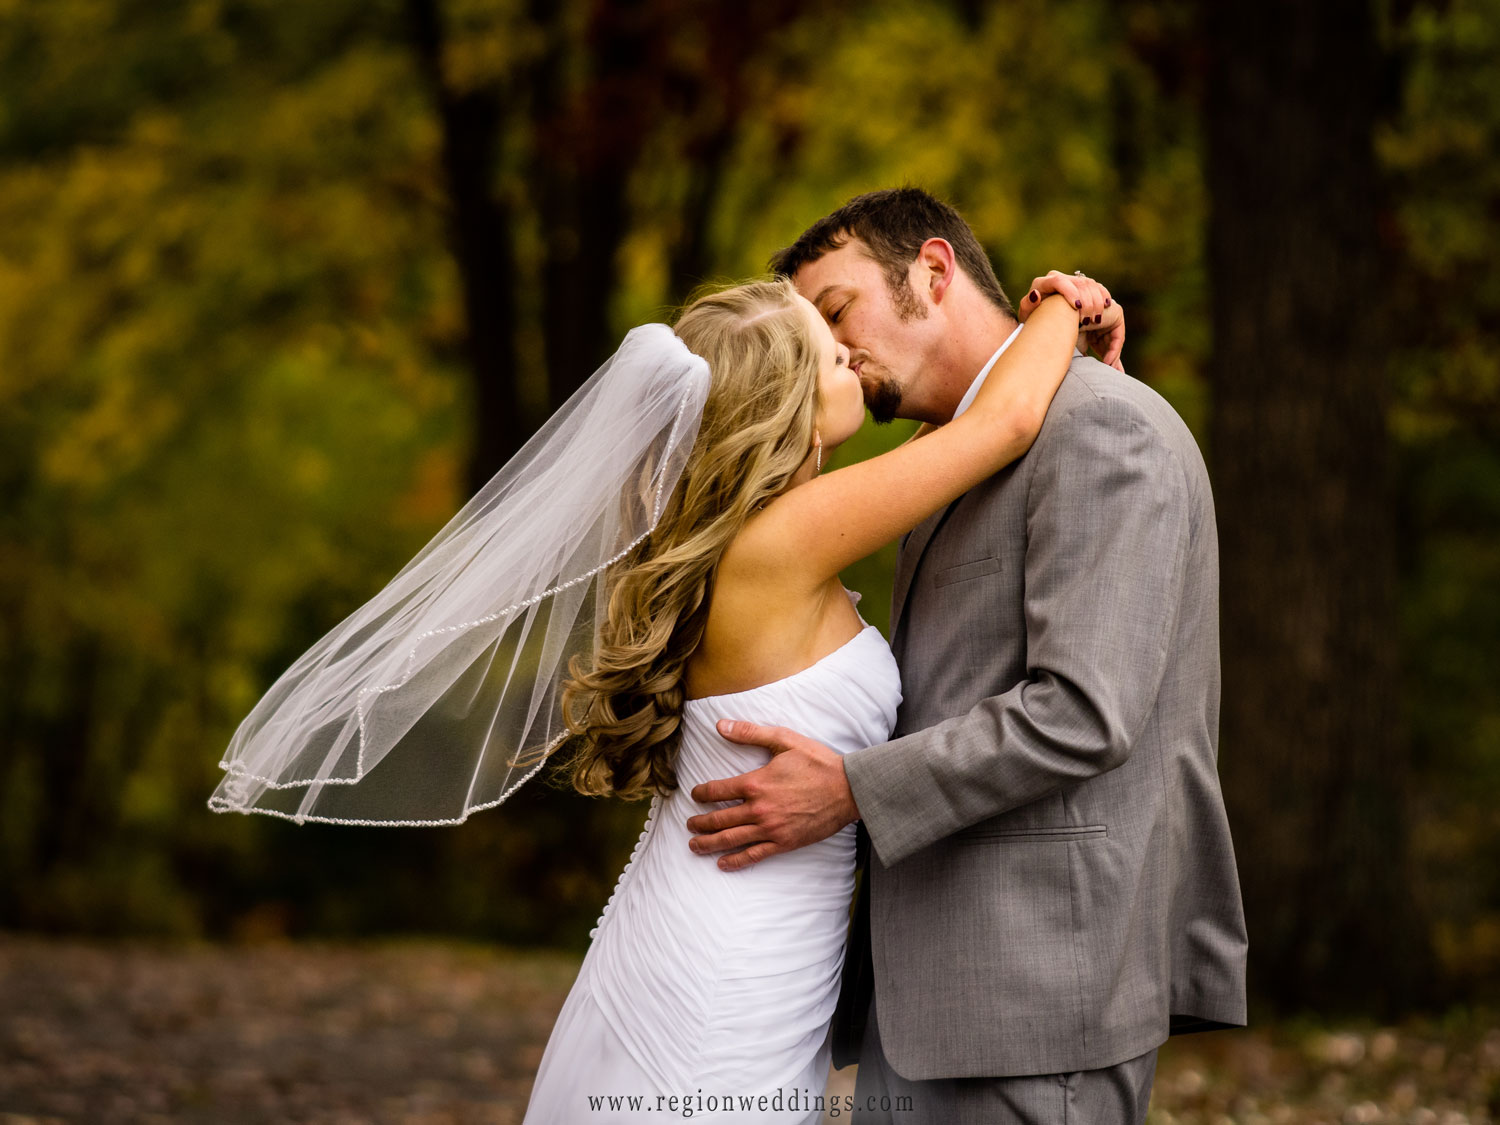 The bride's veil blows in the wind as she kisses her new husband.